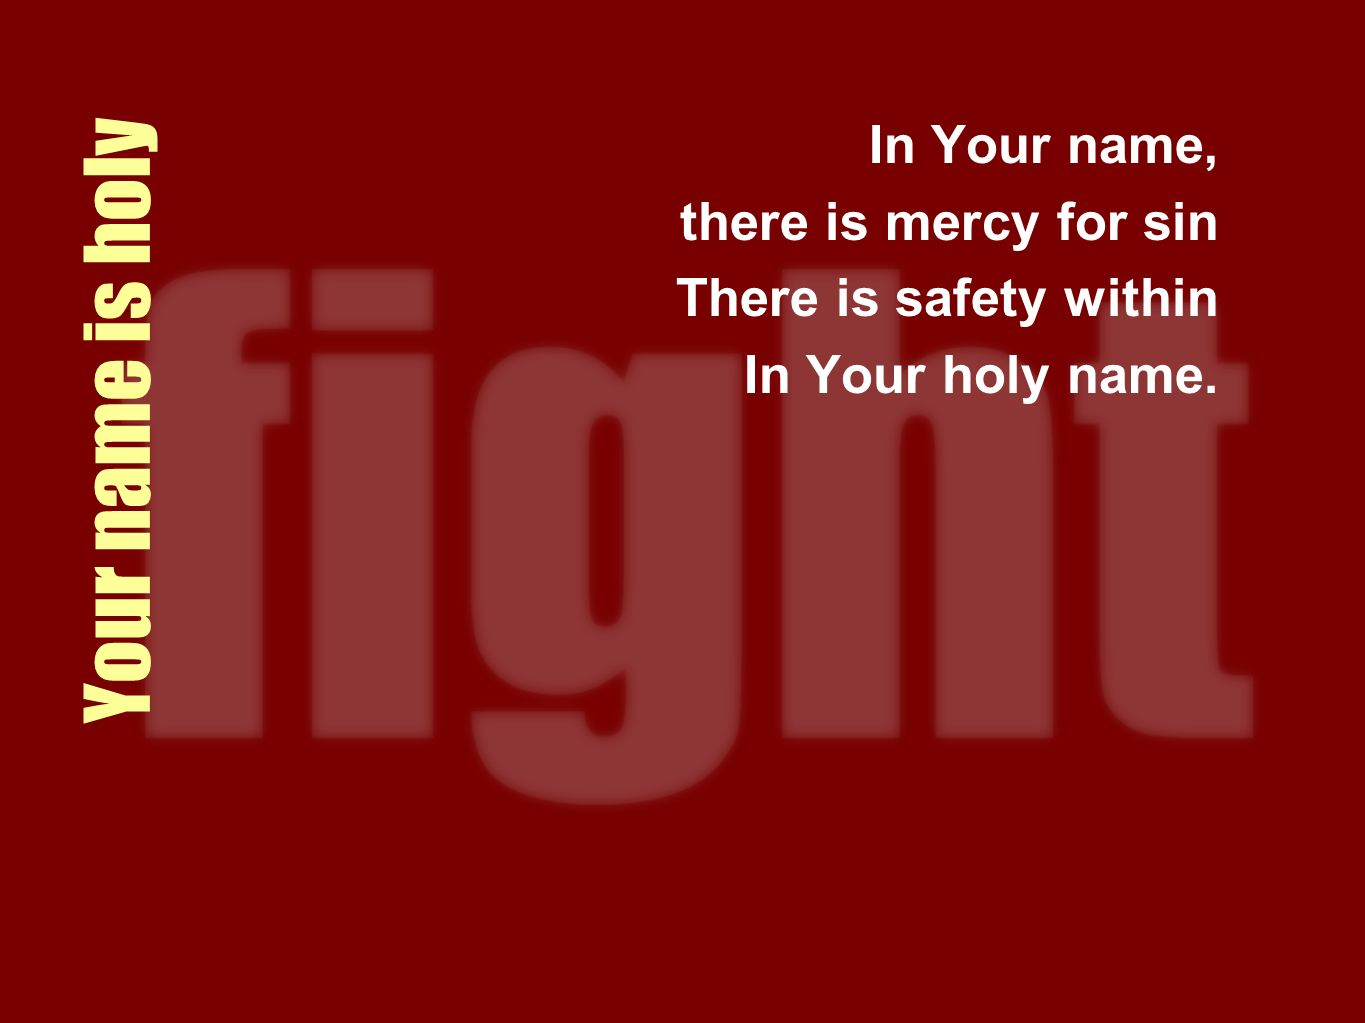 Your name is holy In Your name, there is mercy for sin There is safety within In Your holy name.